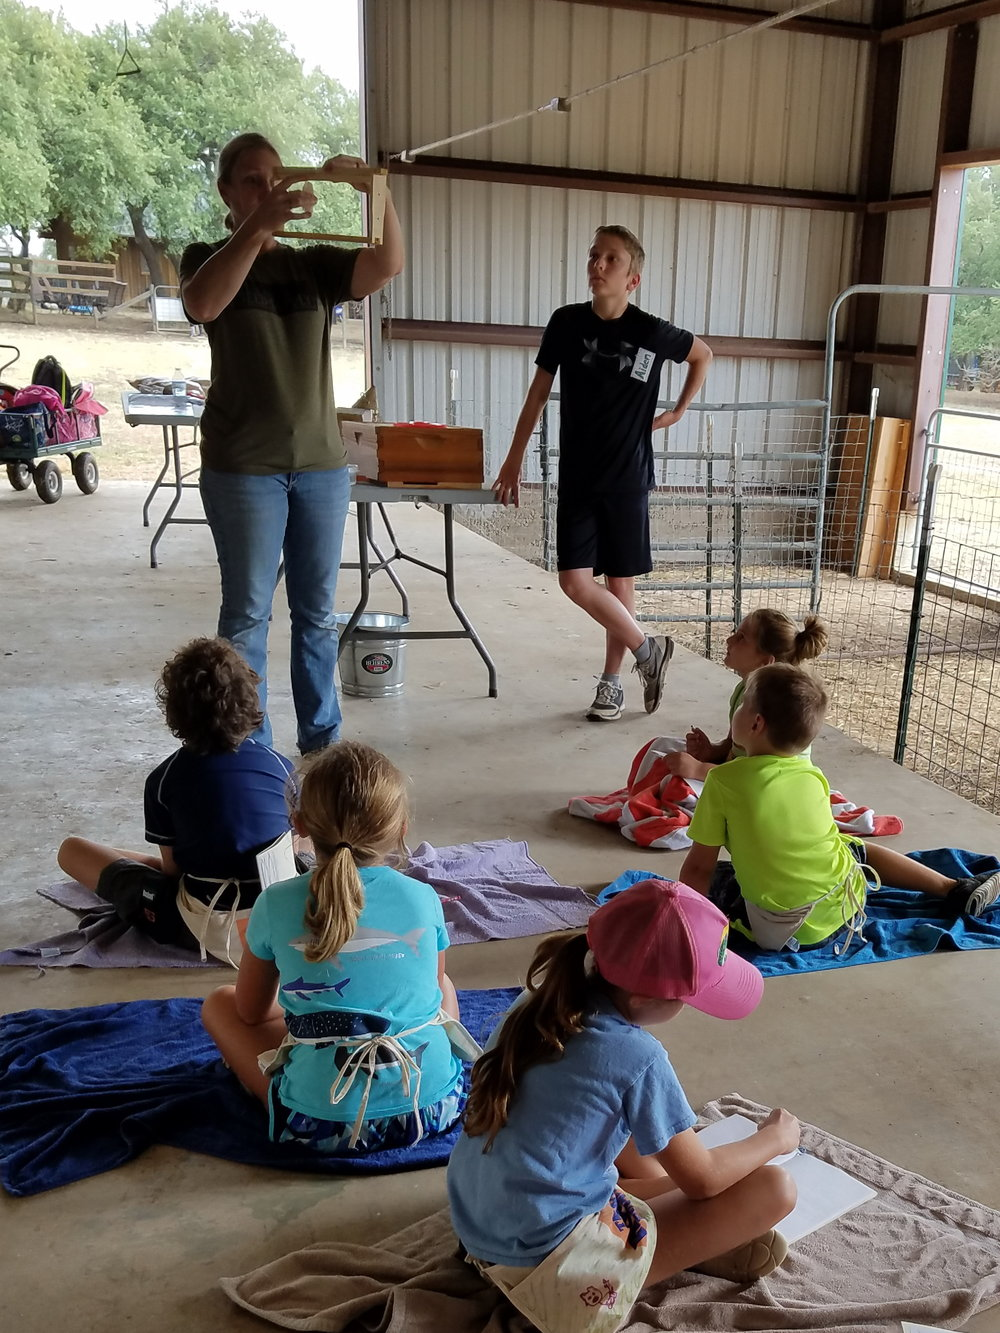 Although the children didn't visit the hives in the field, Farmer Amy explained the process and showed the children all of the equipment needed while explaining how the bees make honey.